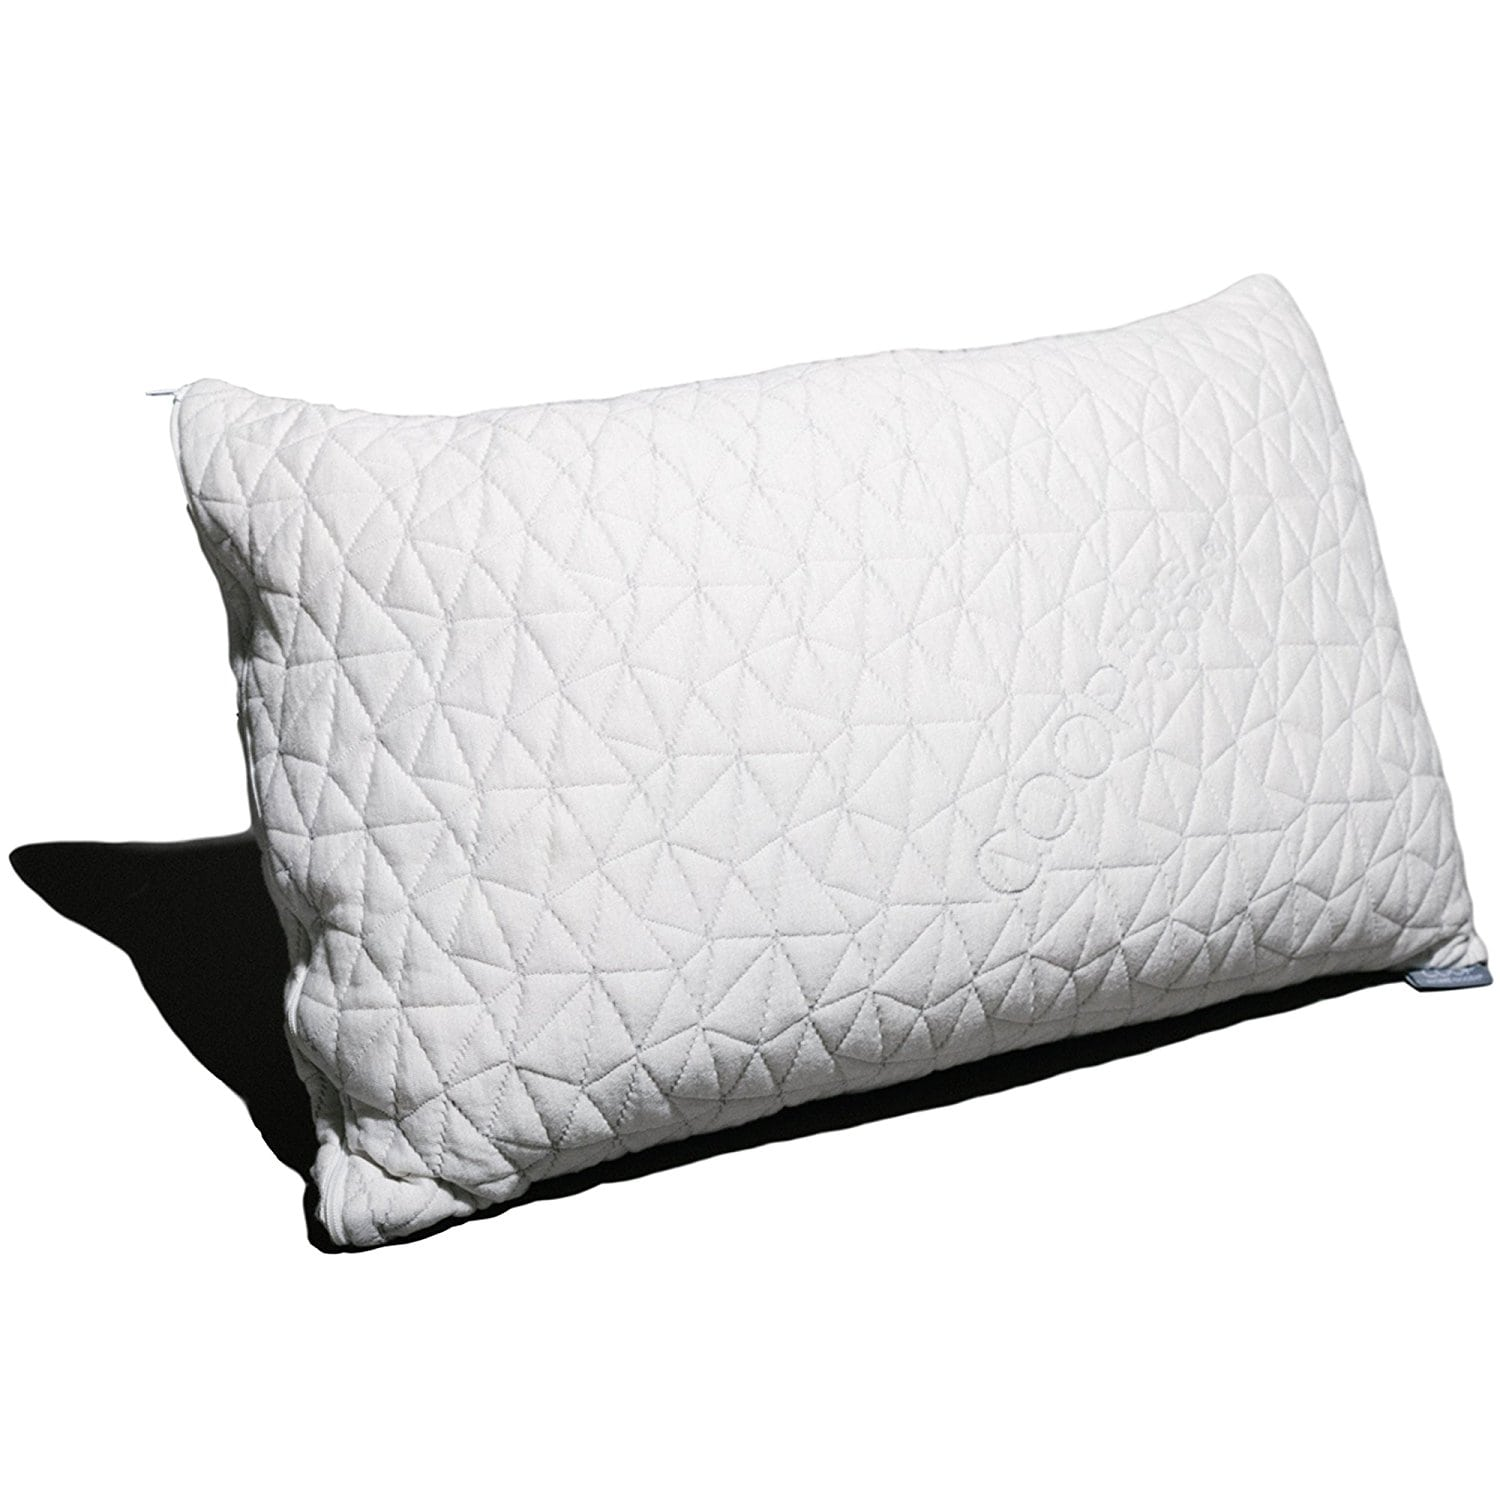 Coop Home Goods Best Pillow for Stomach Sleepers Review by www.snoremagazine.com